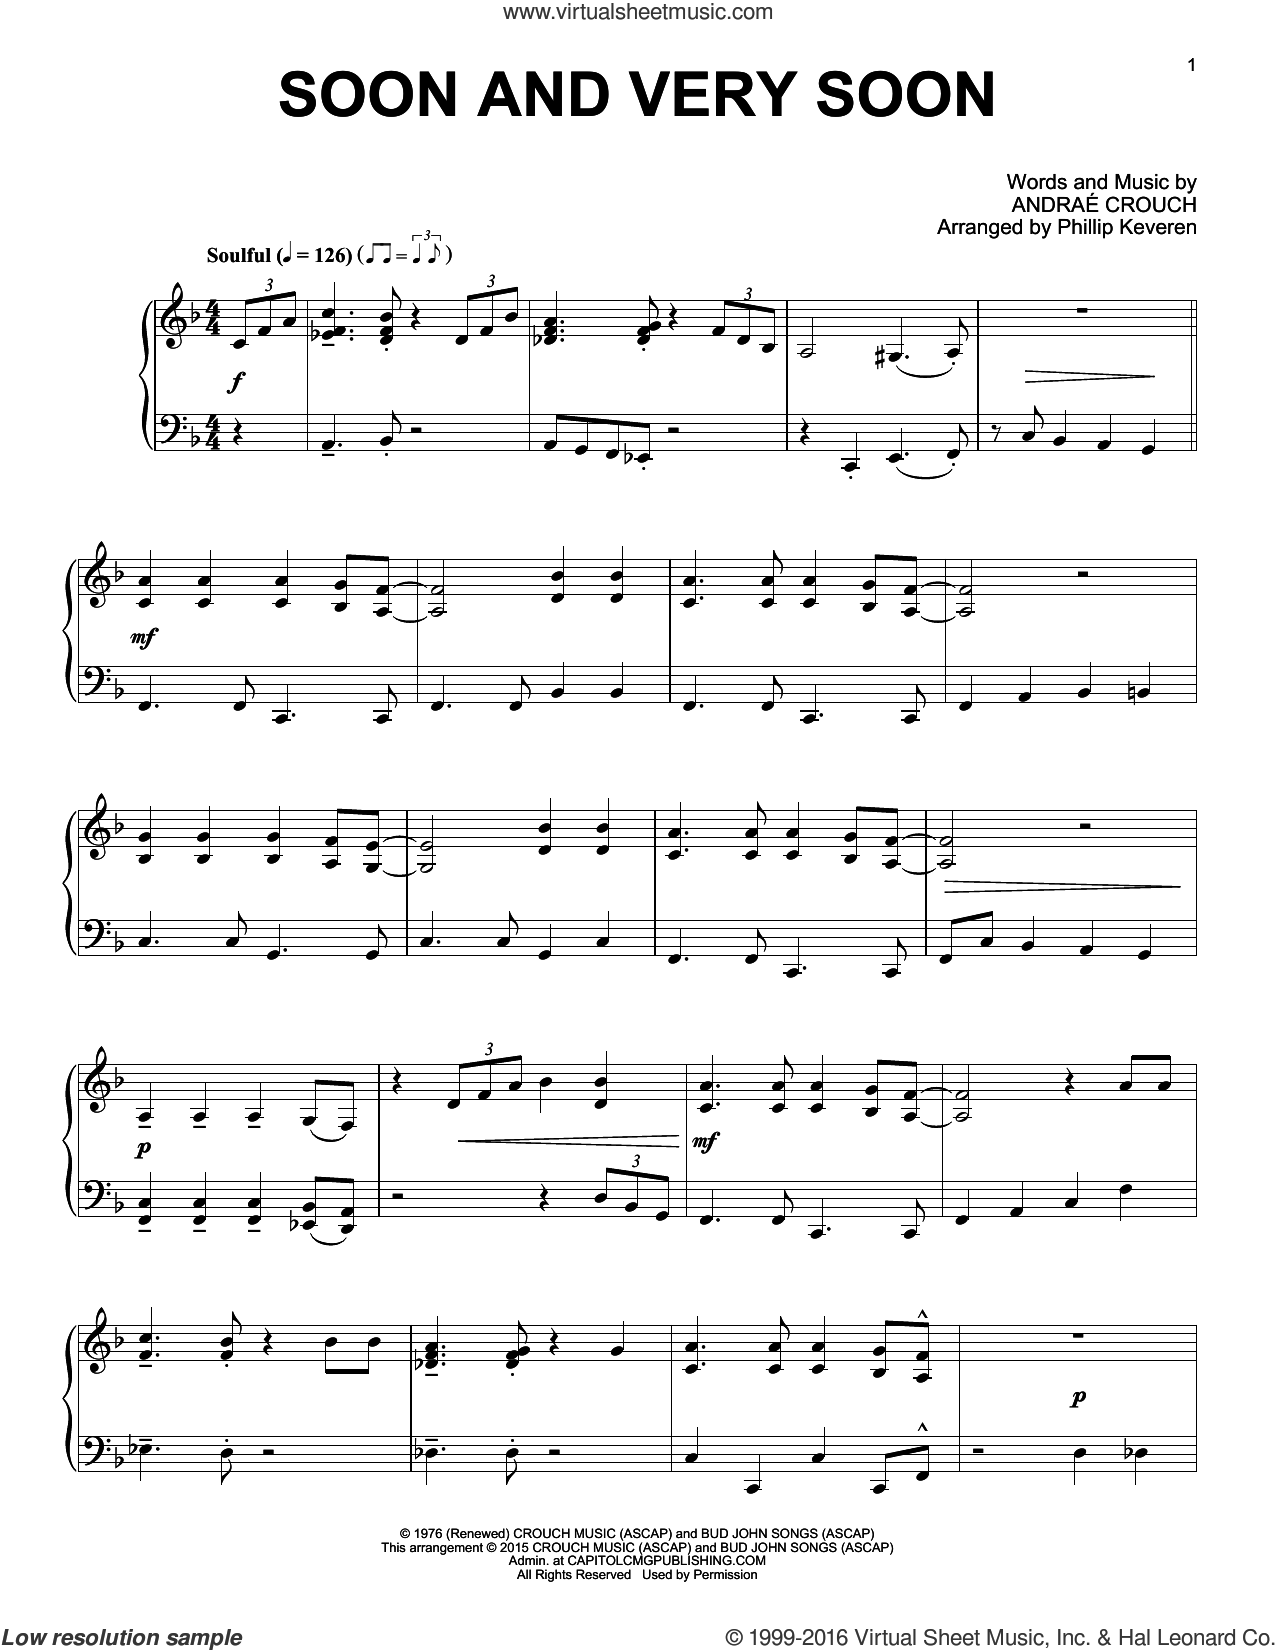 Soon And Very Soon, (intermediate) sheet music for piano solo by Andrae Crouch, Phillip Keveren and Andrae Crouch, intermediate skill level